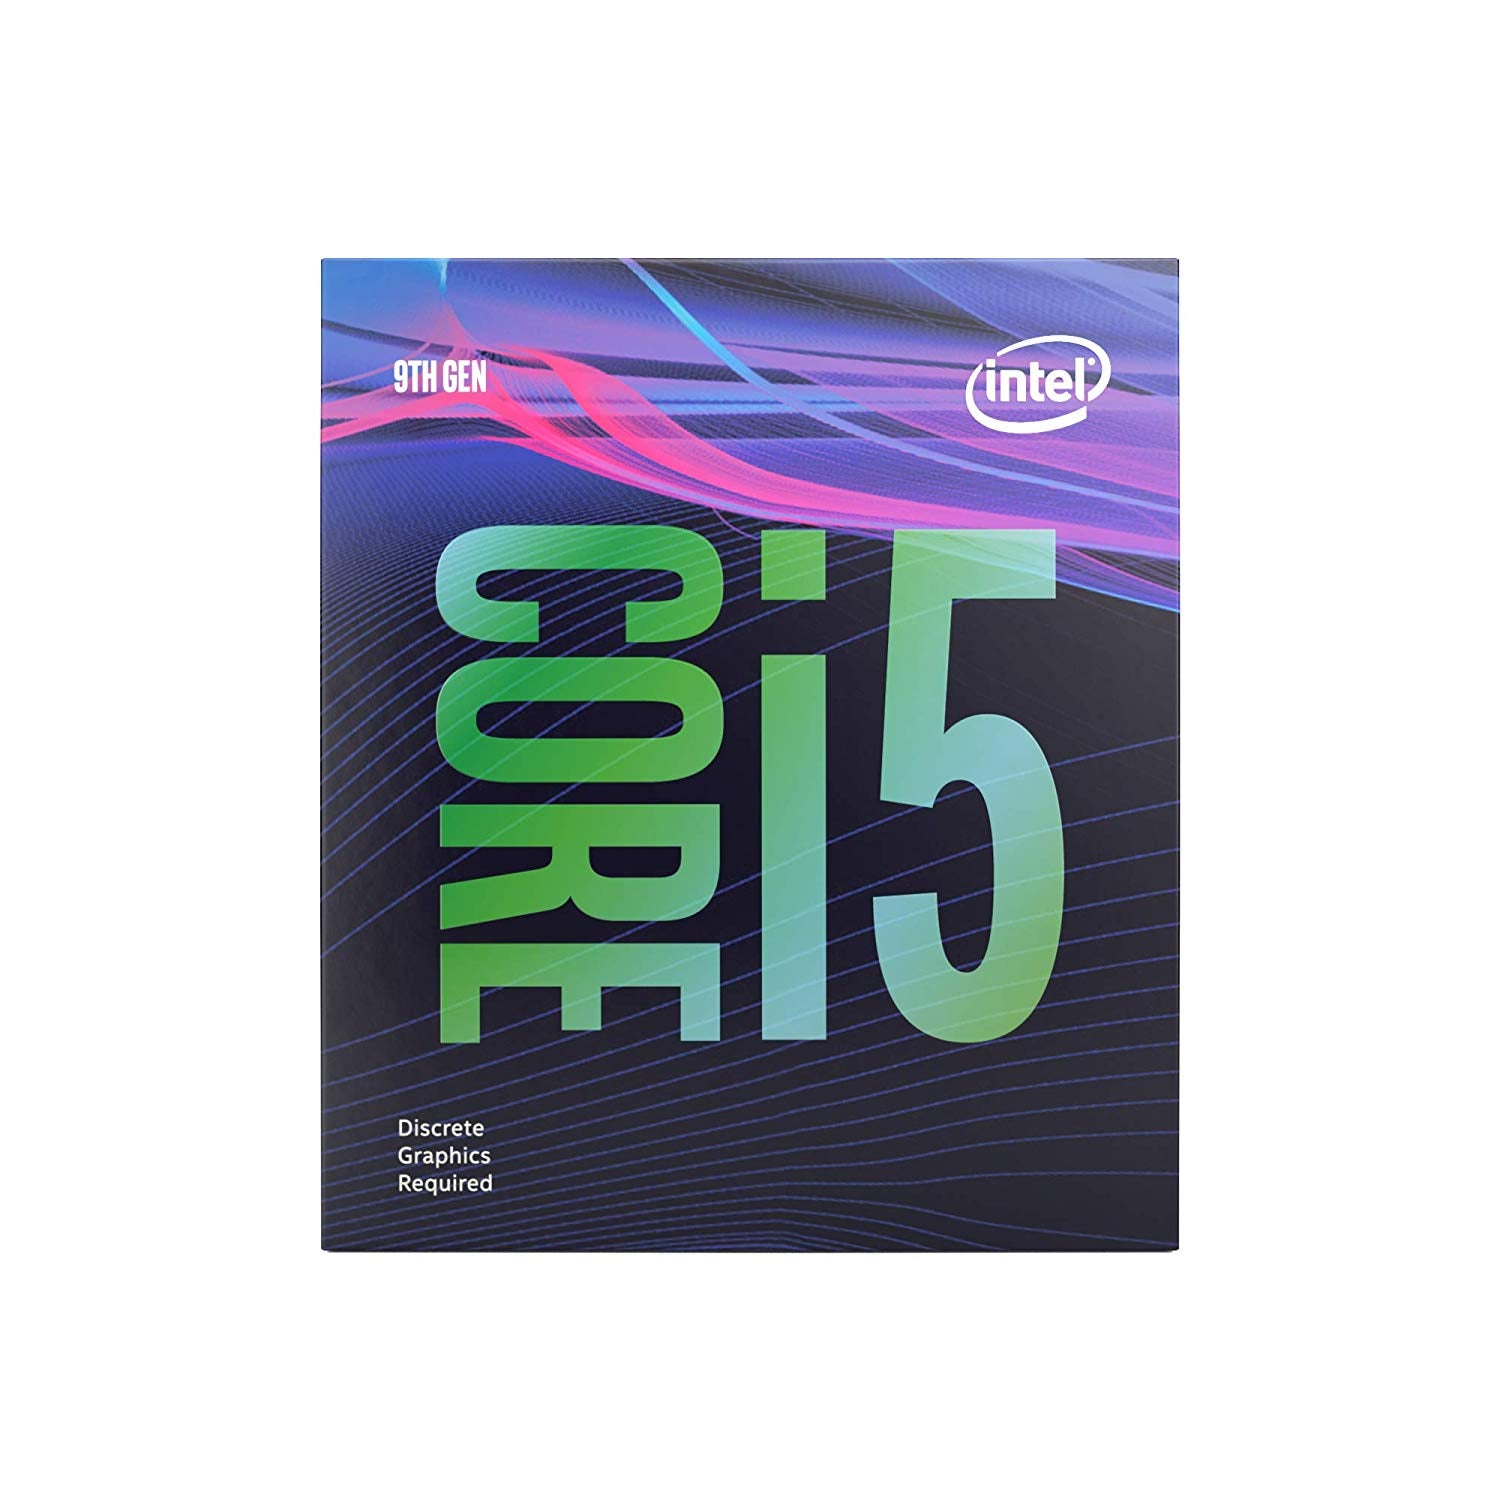 Intel Core i5 9400F 9th Gen Processor 4.1 GHz LGA1151 65W (Graphic Card Needed for Display)